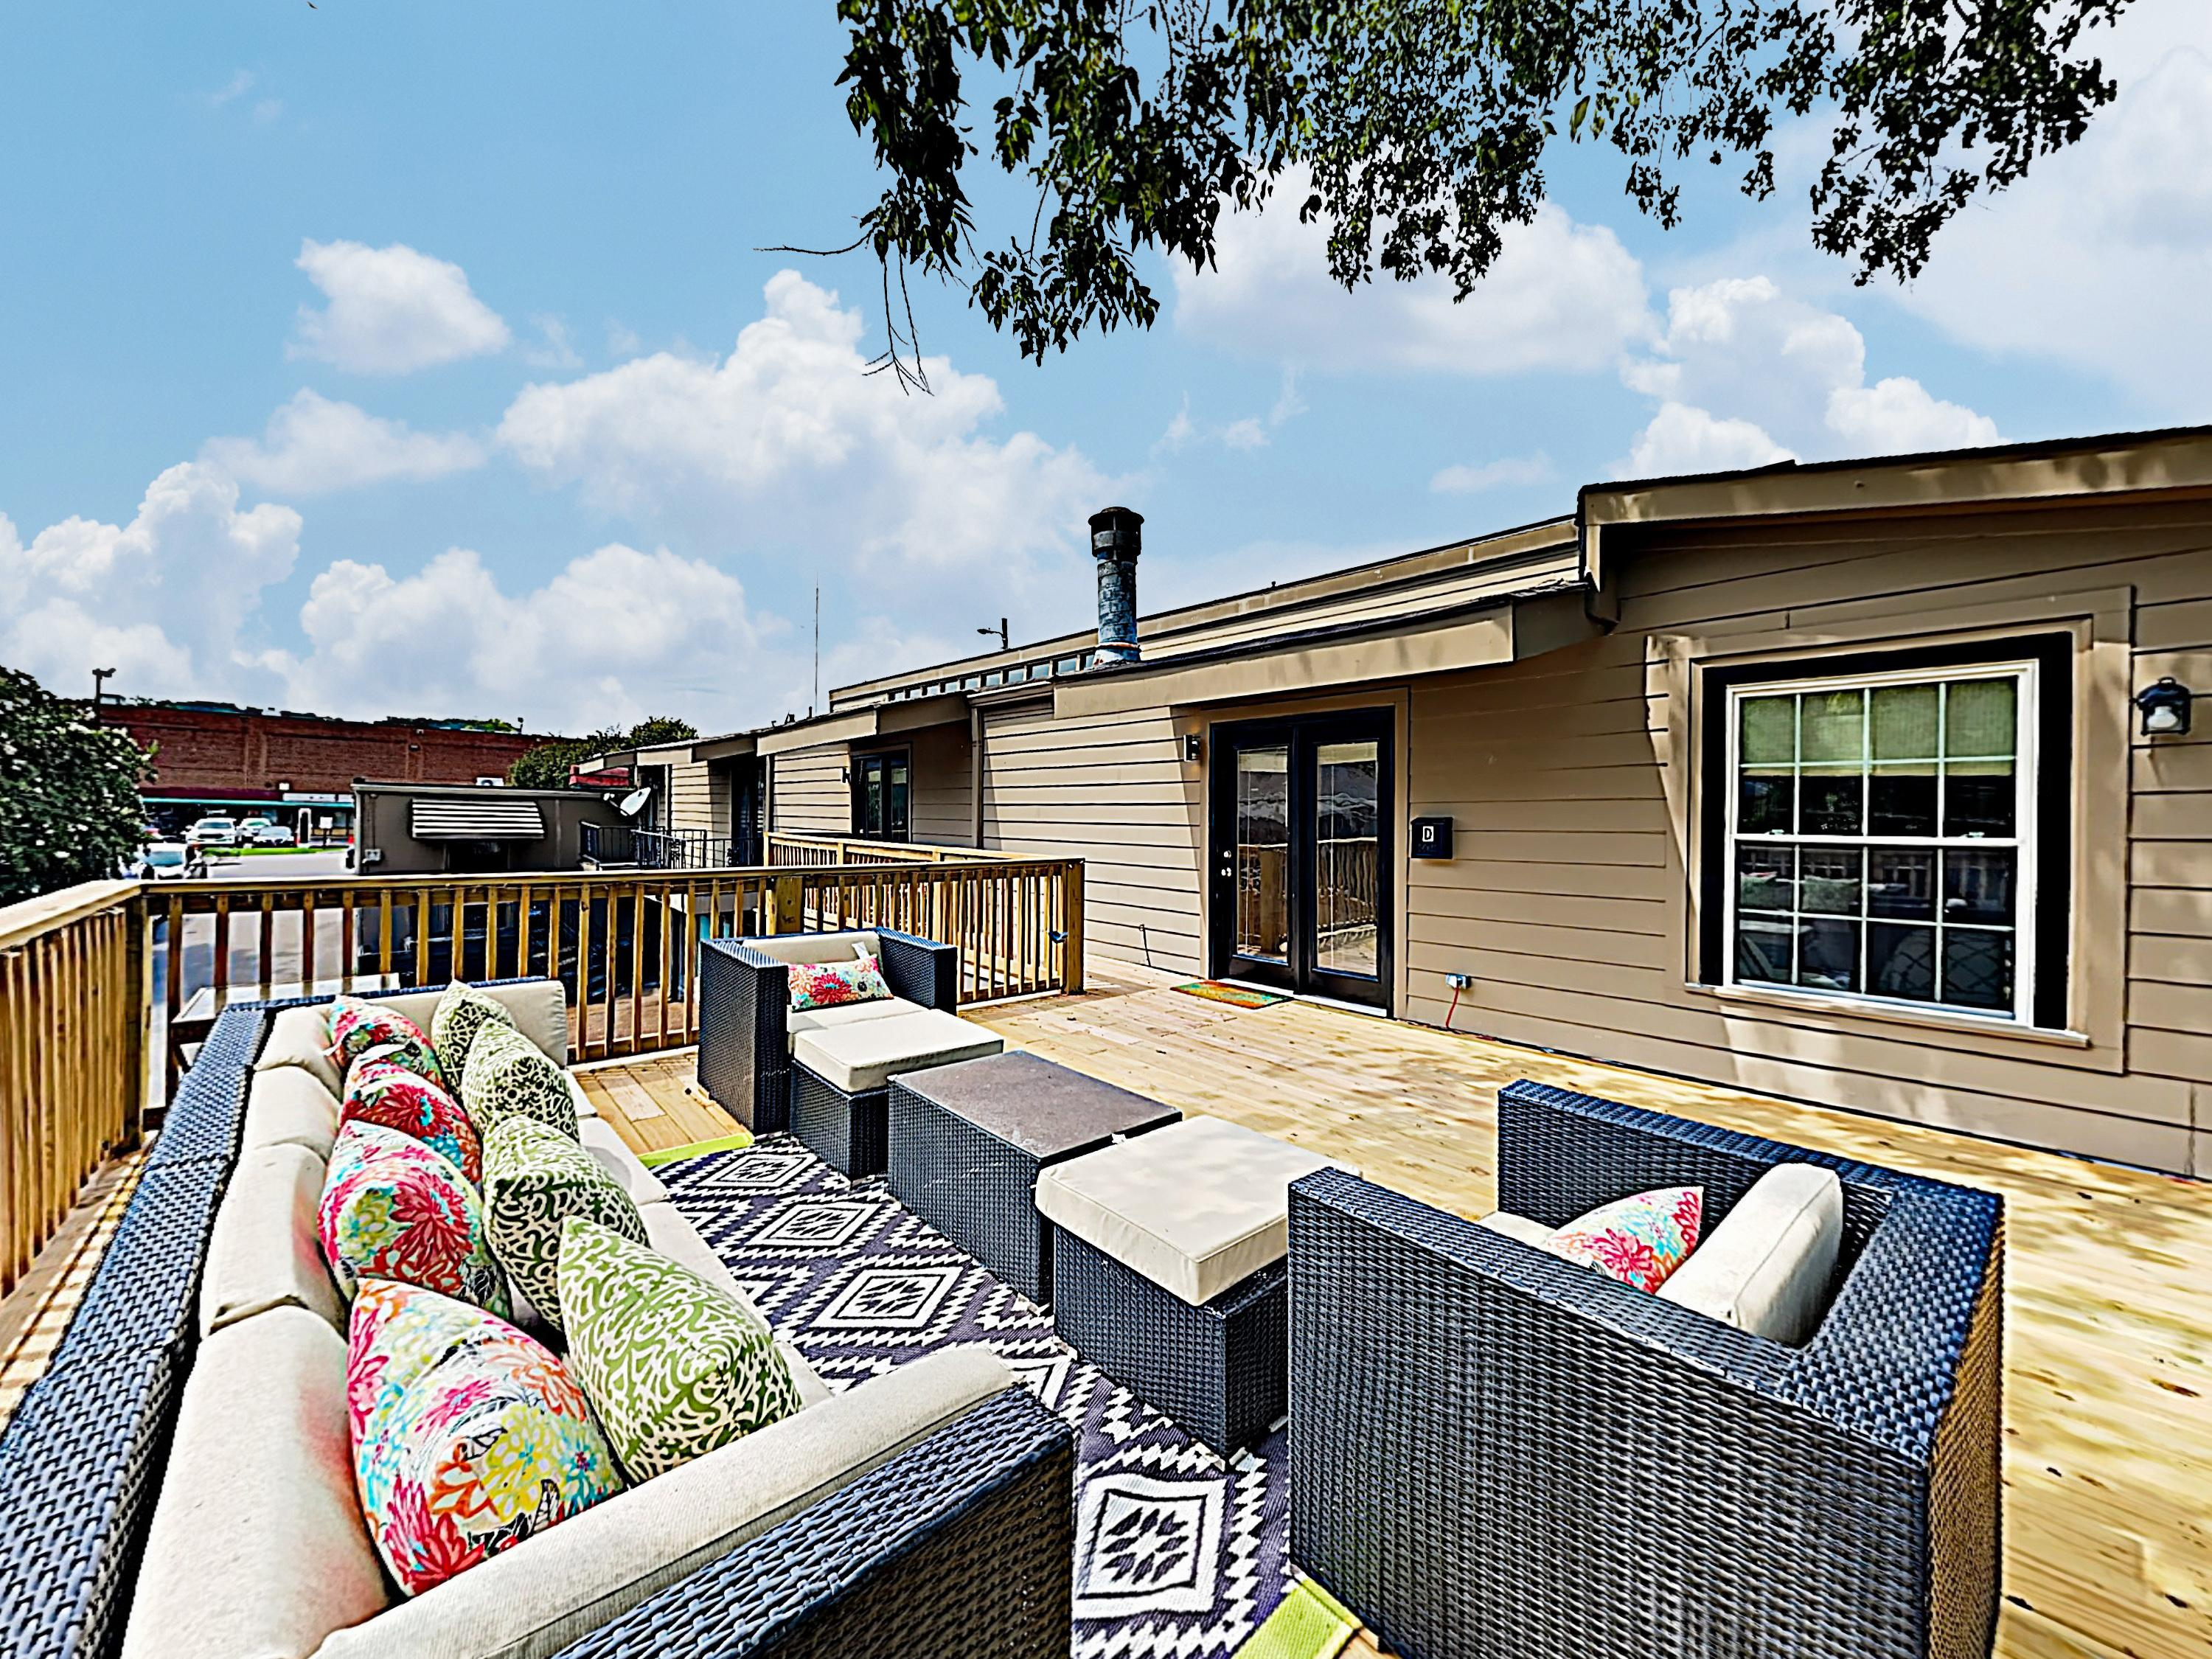 Relax outside on the expansive wooden deck, furnished with wicker seating for 6.